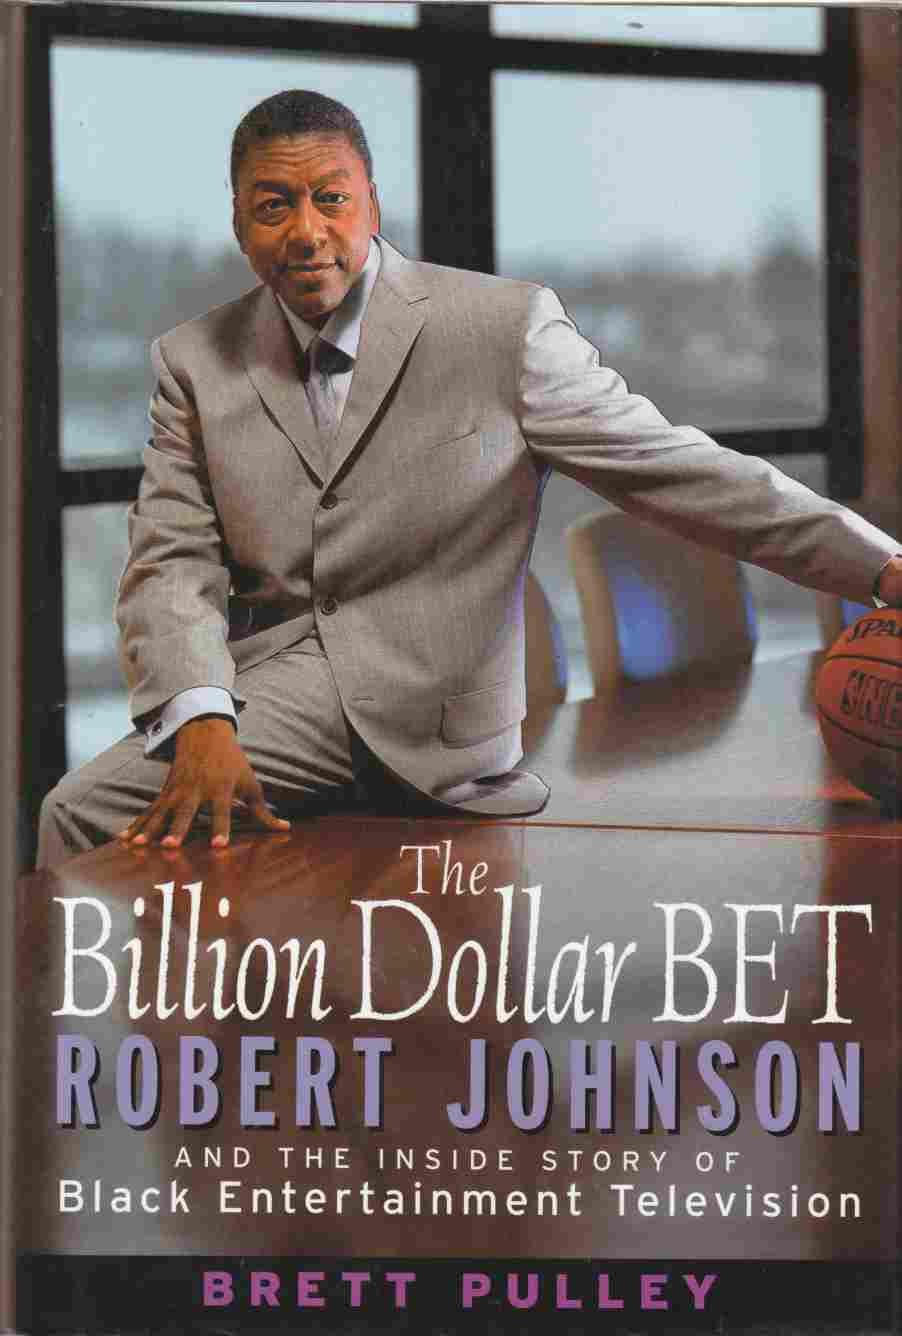 Image for The Billion Dollar BET Robert Johnson and the Inside Story of Black Entertainment Television